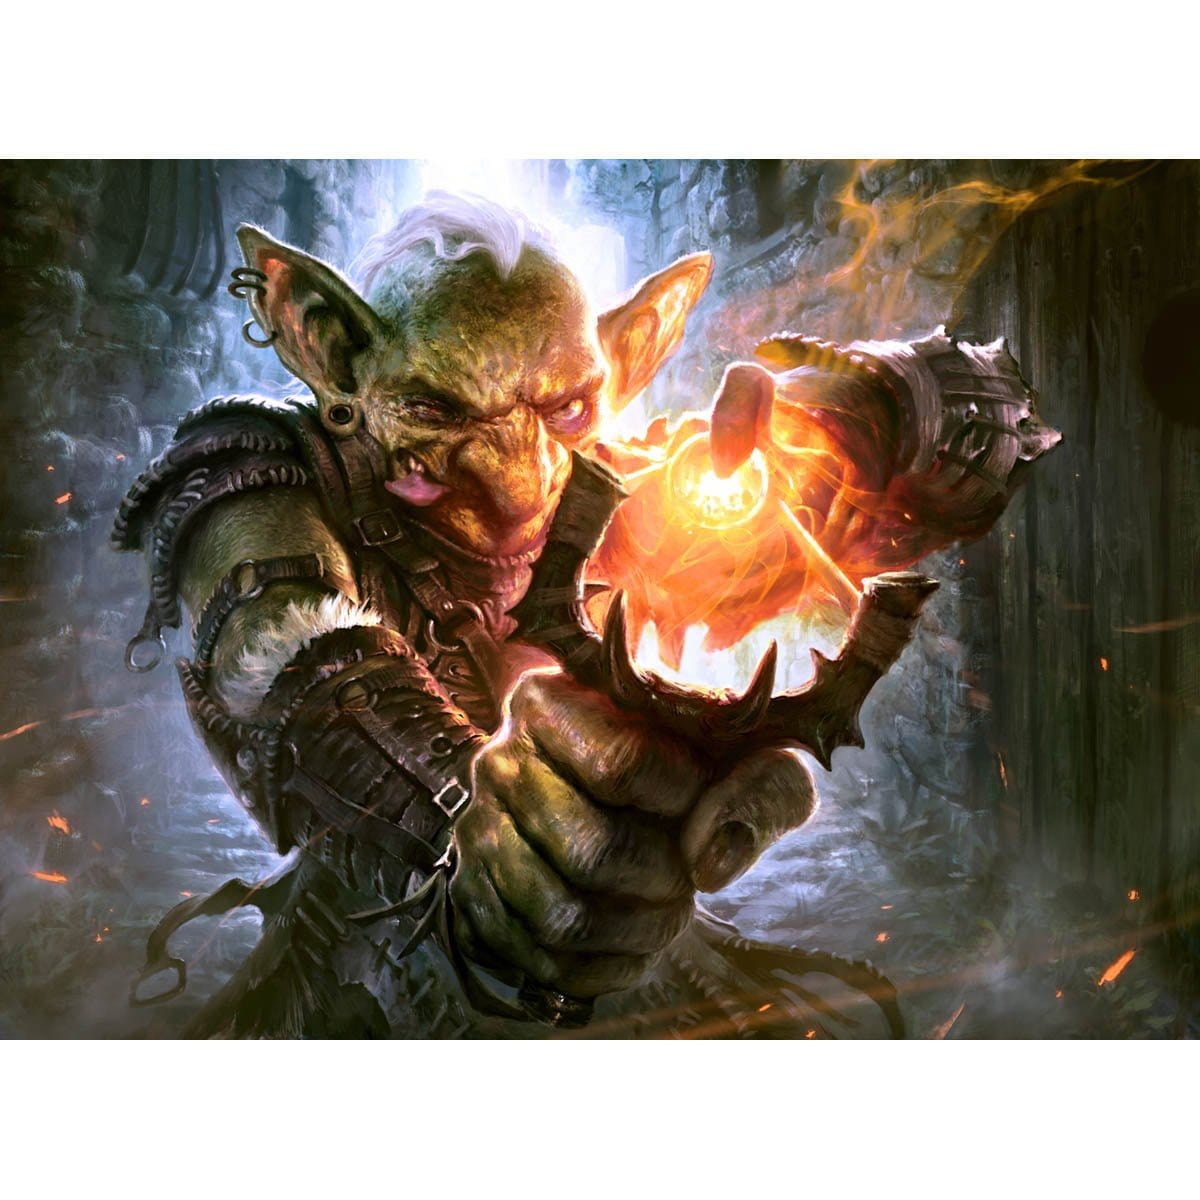 Guttersnipe Print - Print - Original Magic Art - Accessories for Magic the Gathering and other card games